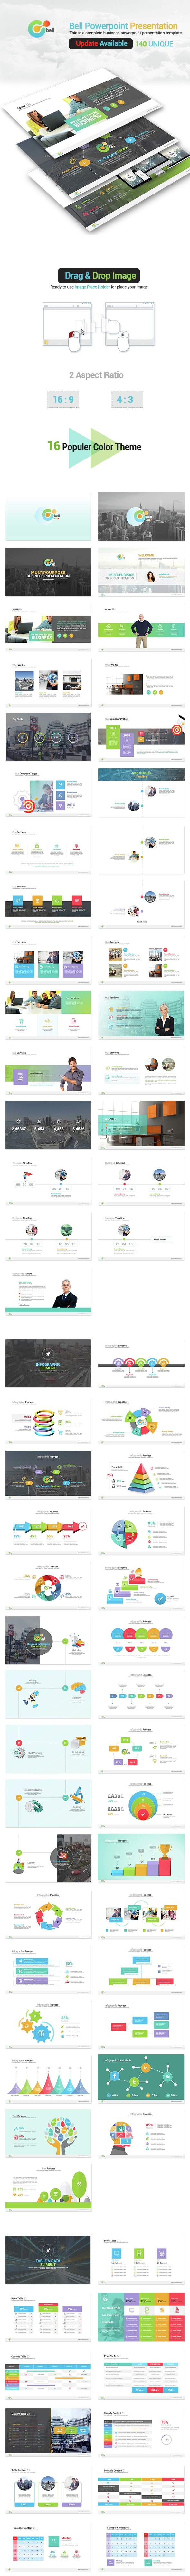 Bell- Business Powerpoint Presentation - Business PowerPoint Templates